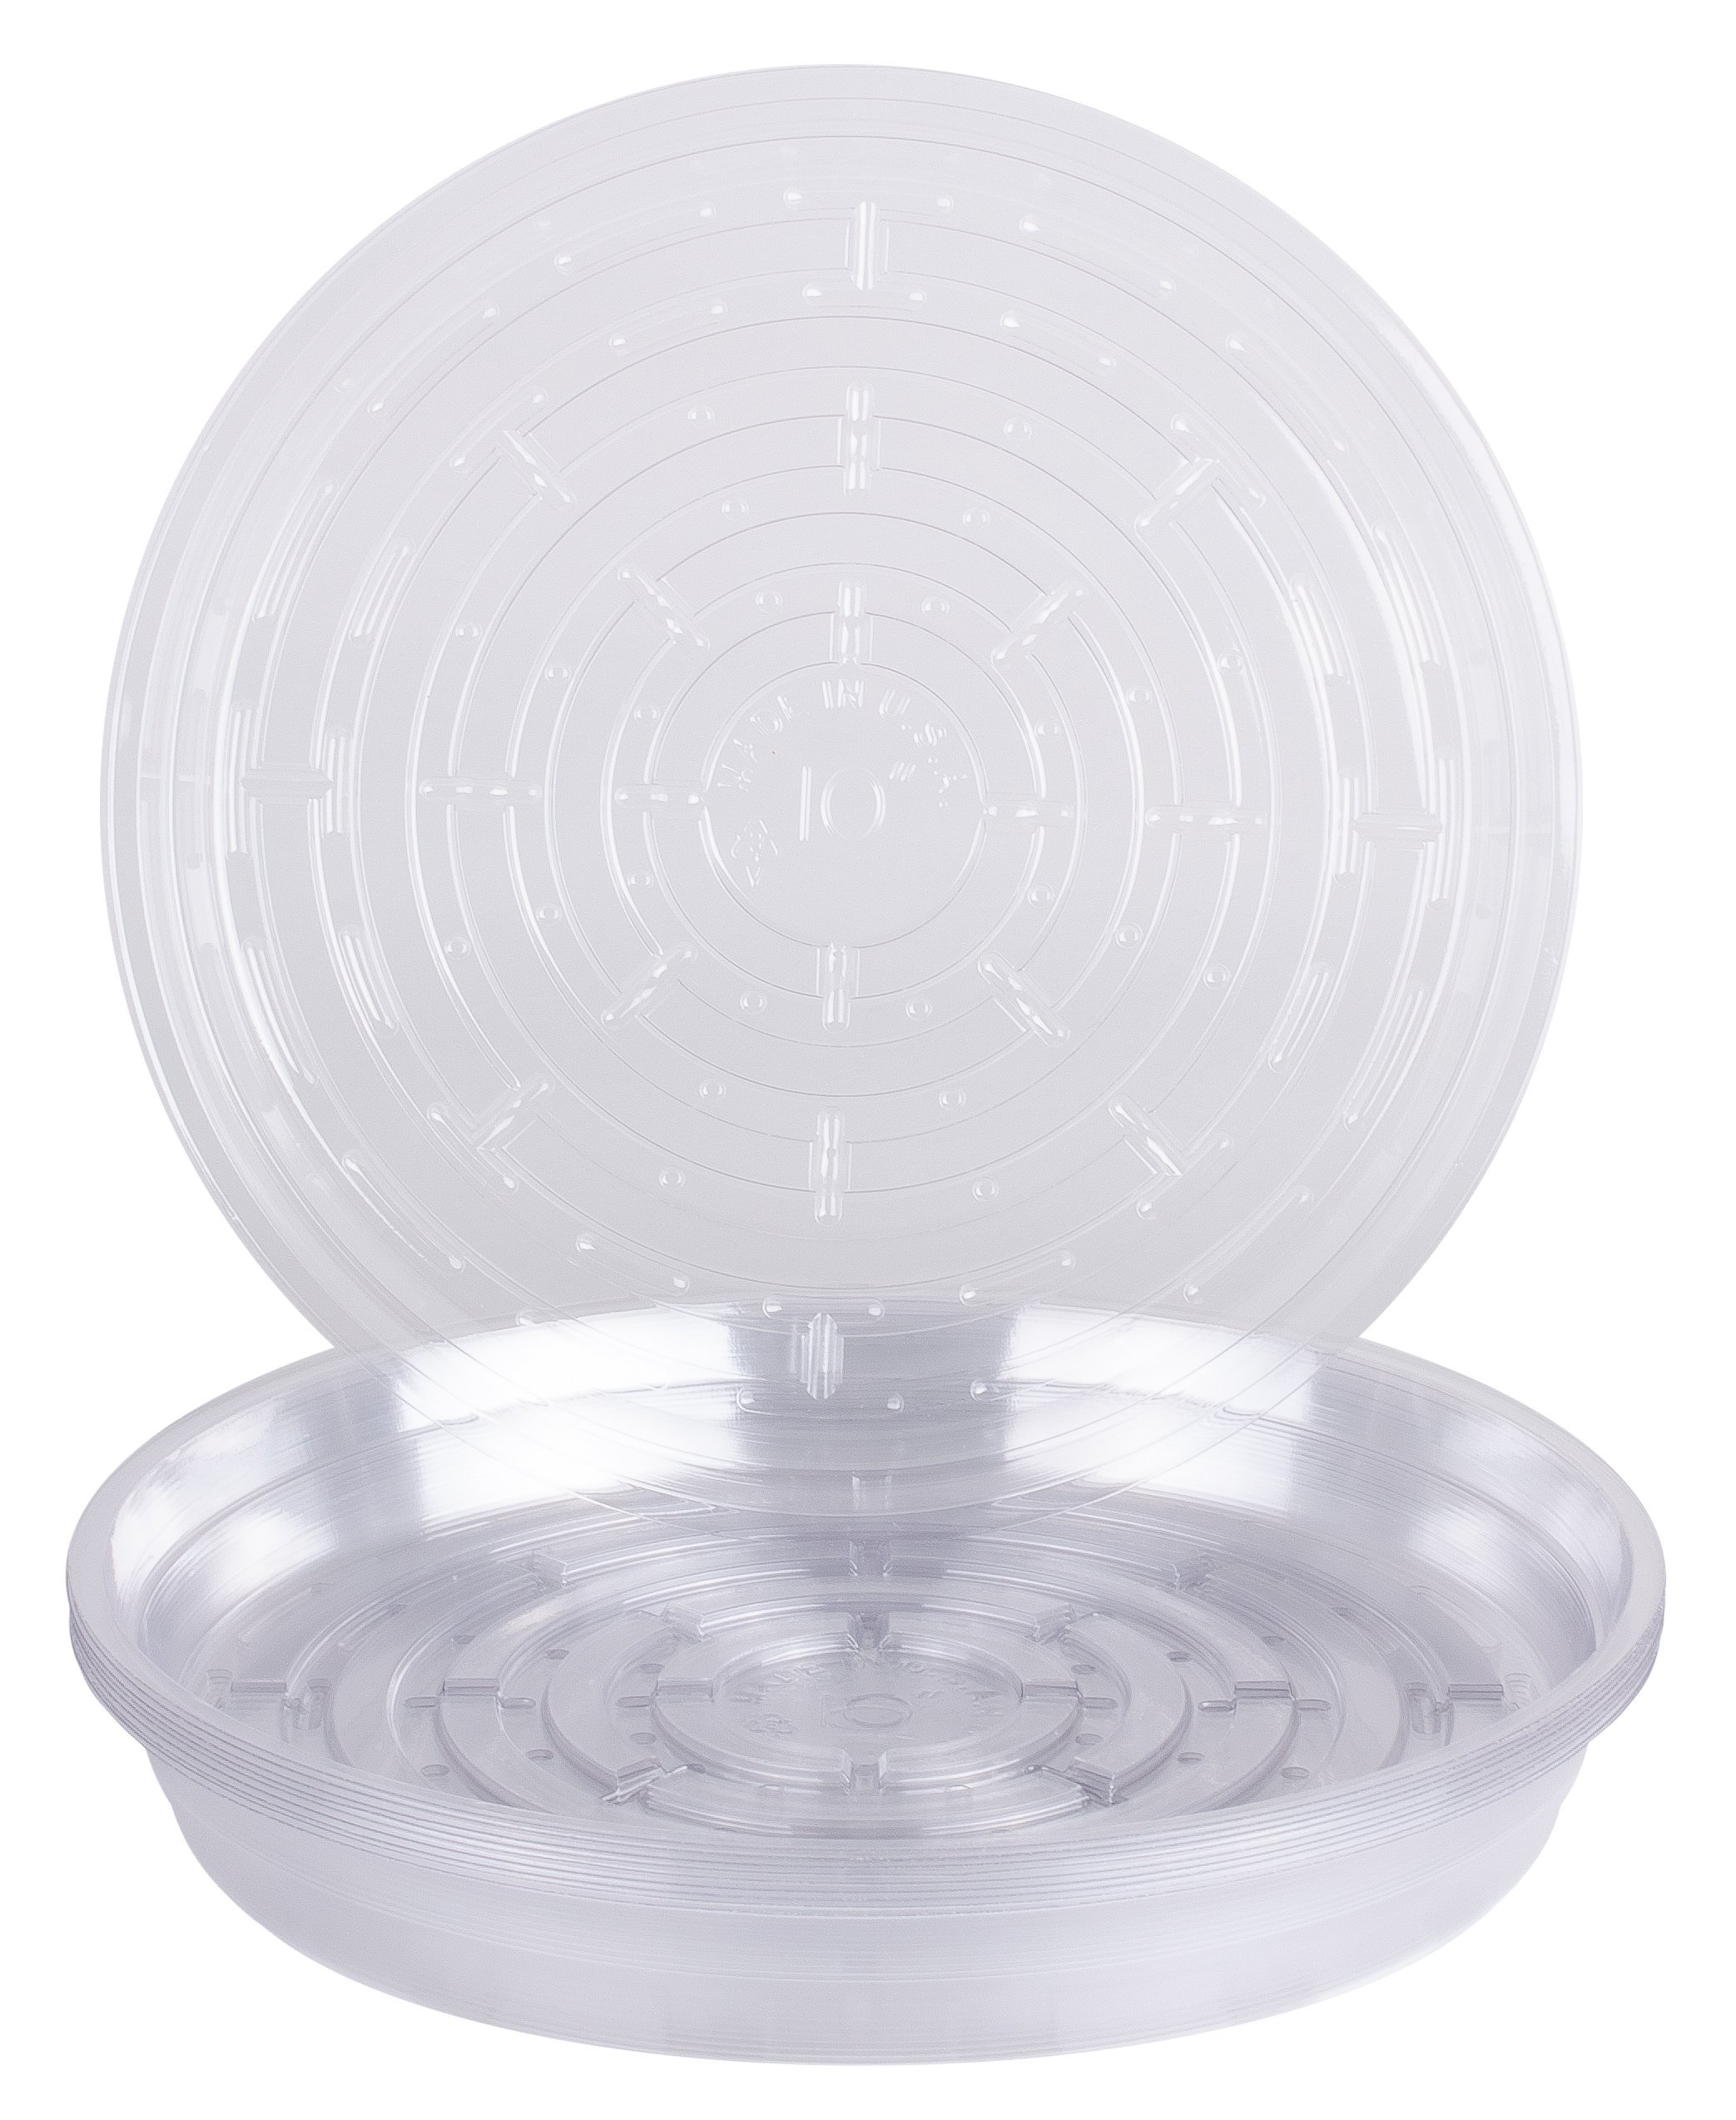 Curtis Wagner Round Clear Vinyl Plant Saucer, Pack of 10 by Curtis Wagner